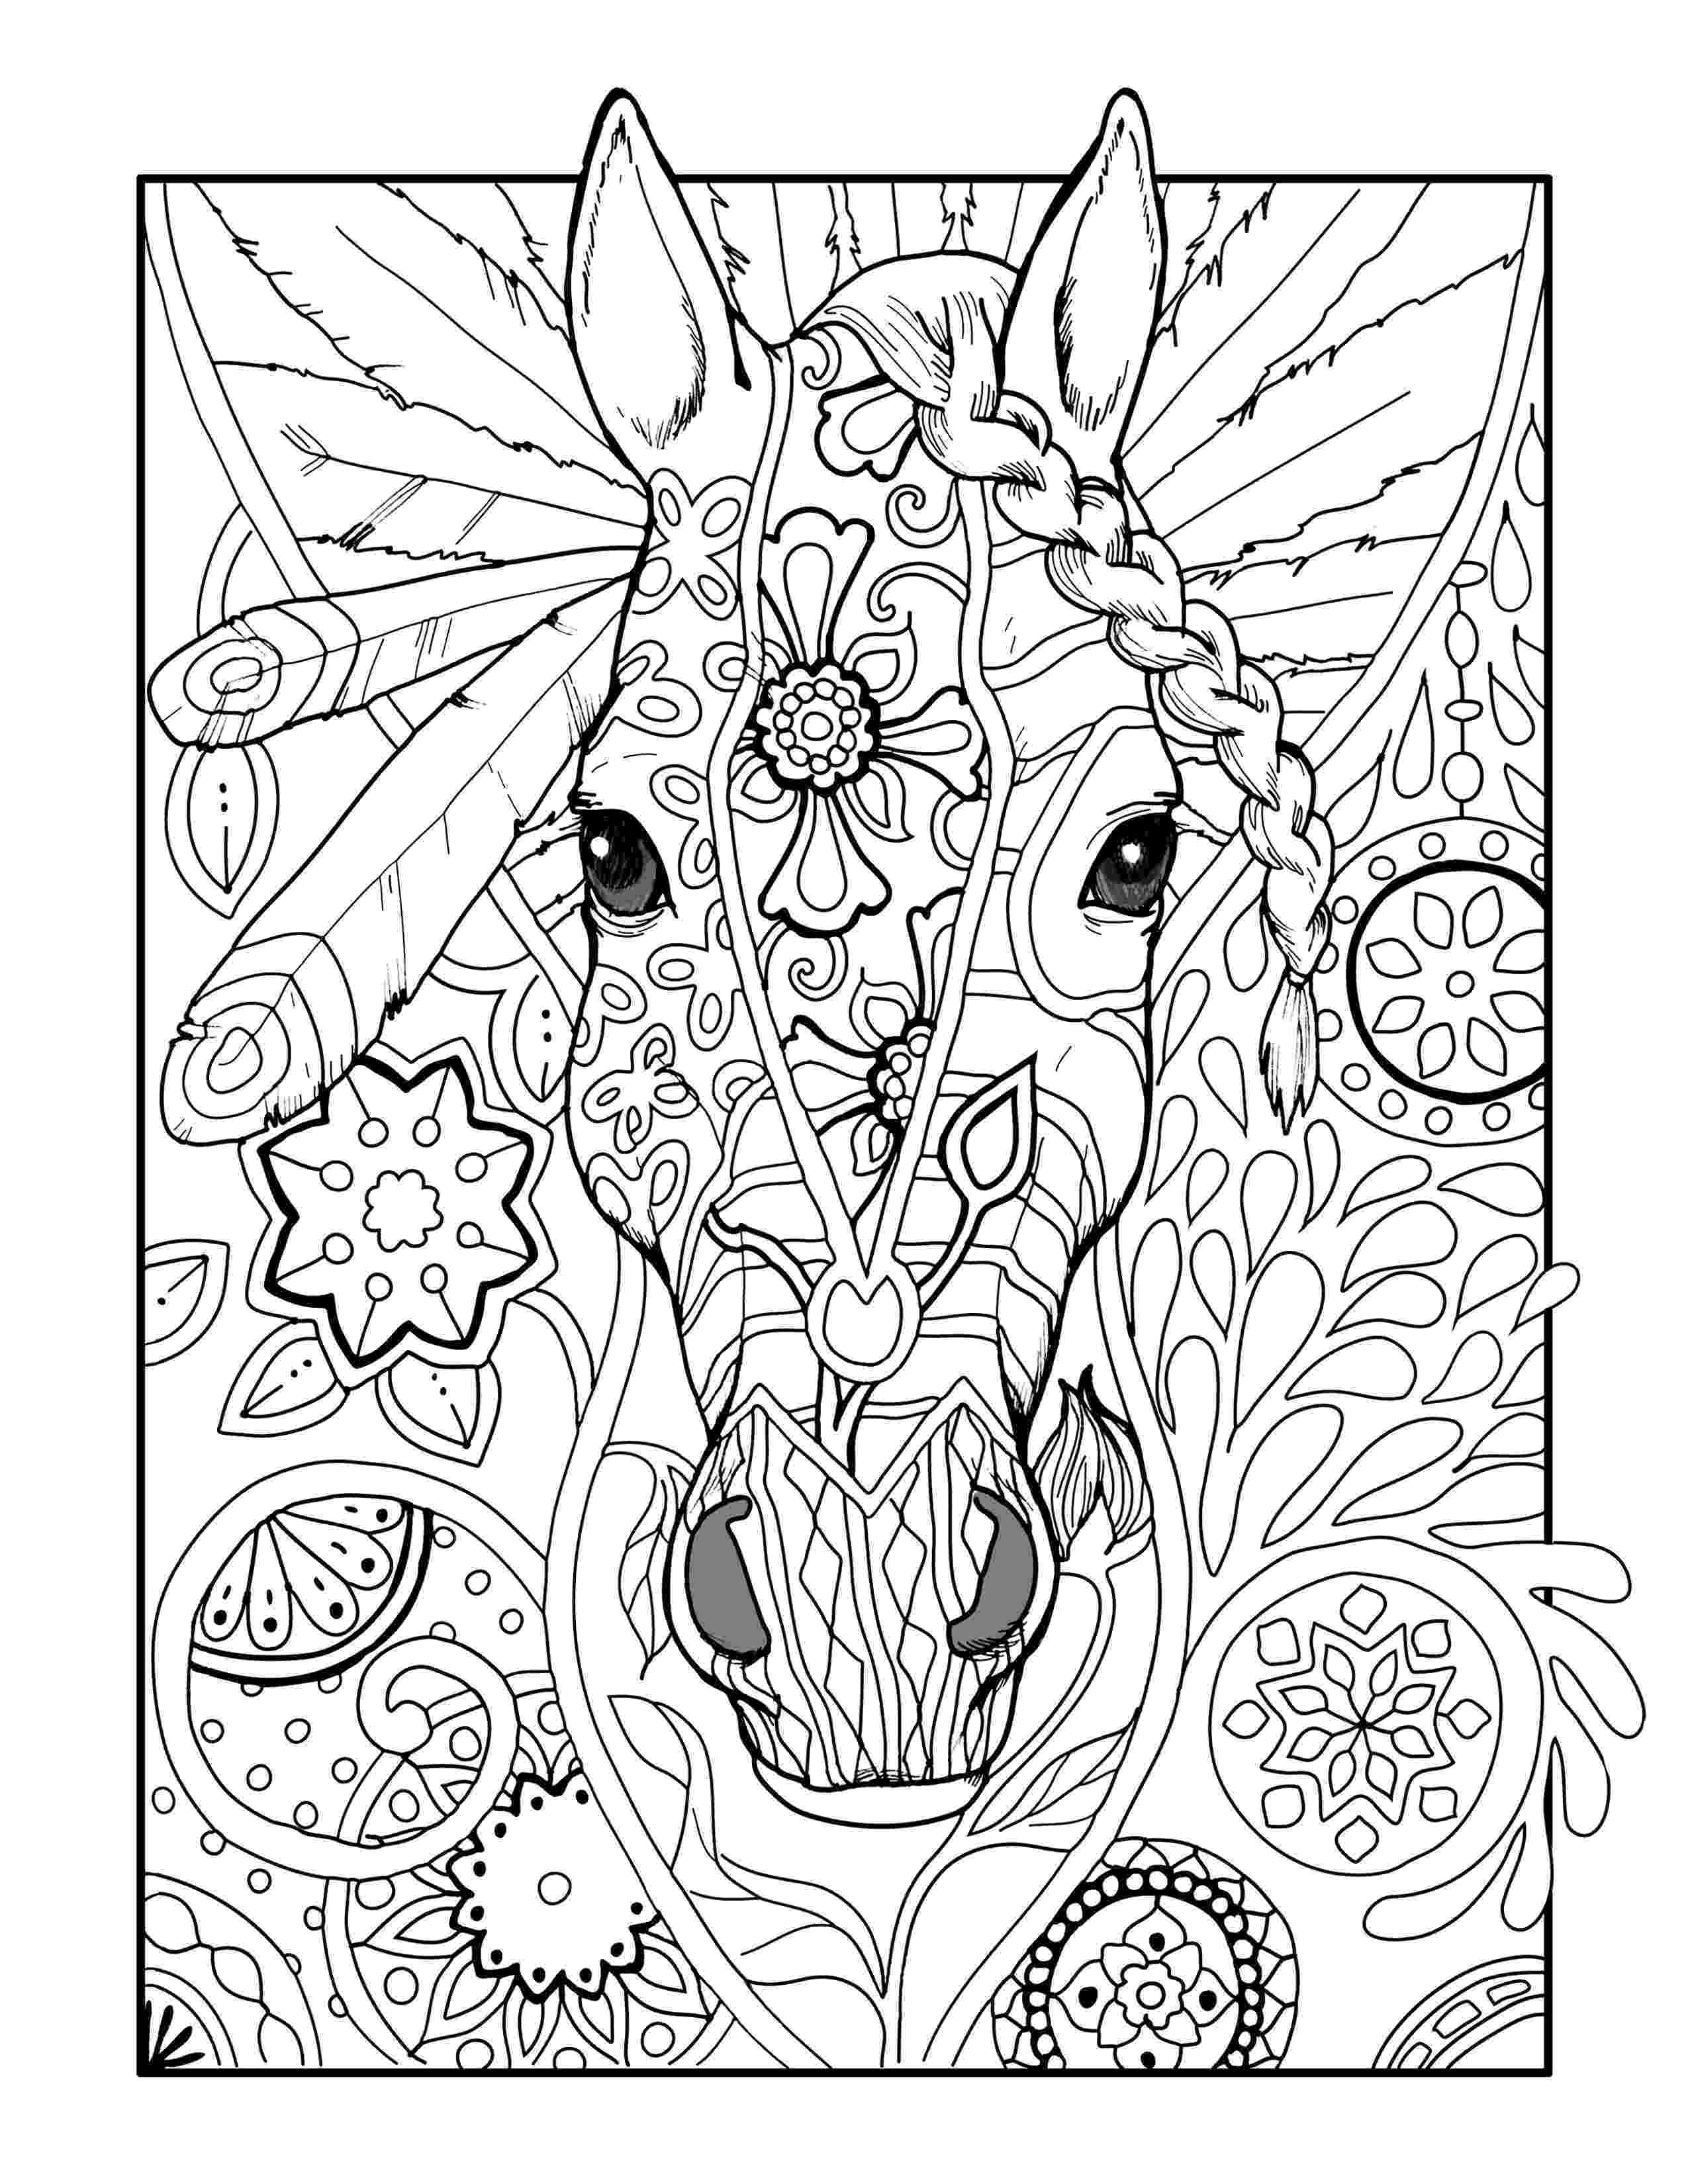 adult coloring pages animals animals coloring pages for adults free printable animals coloring animals adult pages